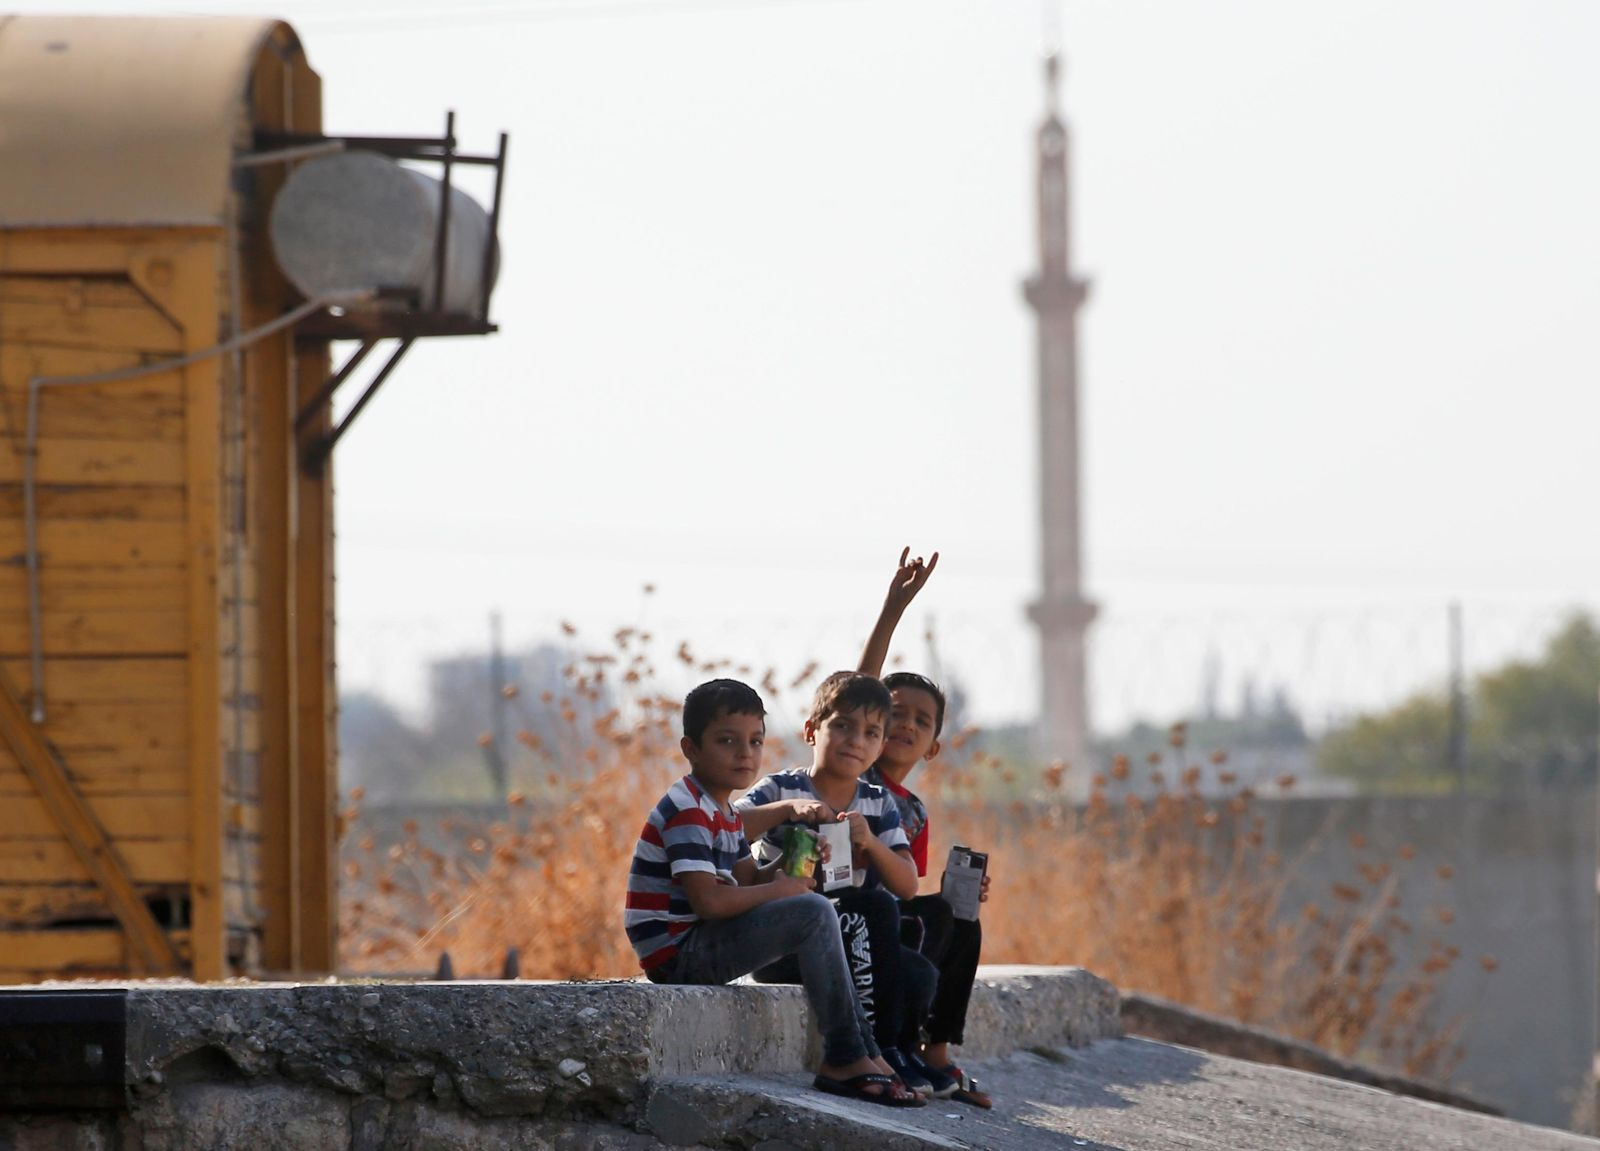 Children gesture to the camera in Akcakale Sanliurfa province, southeastern Turkey, at the border with Syria, Friday, Oct. 18, 2019. (AP Photo/Lefteris Pitarakis)